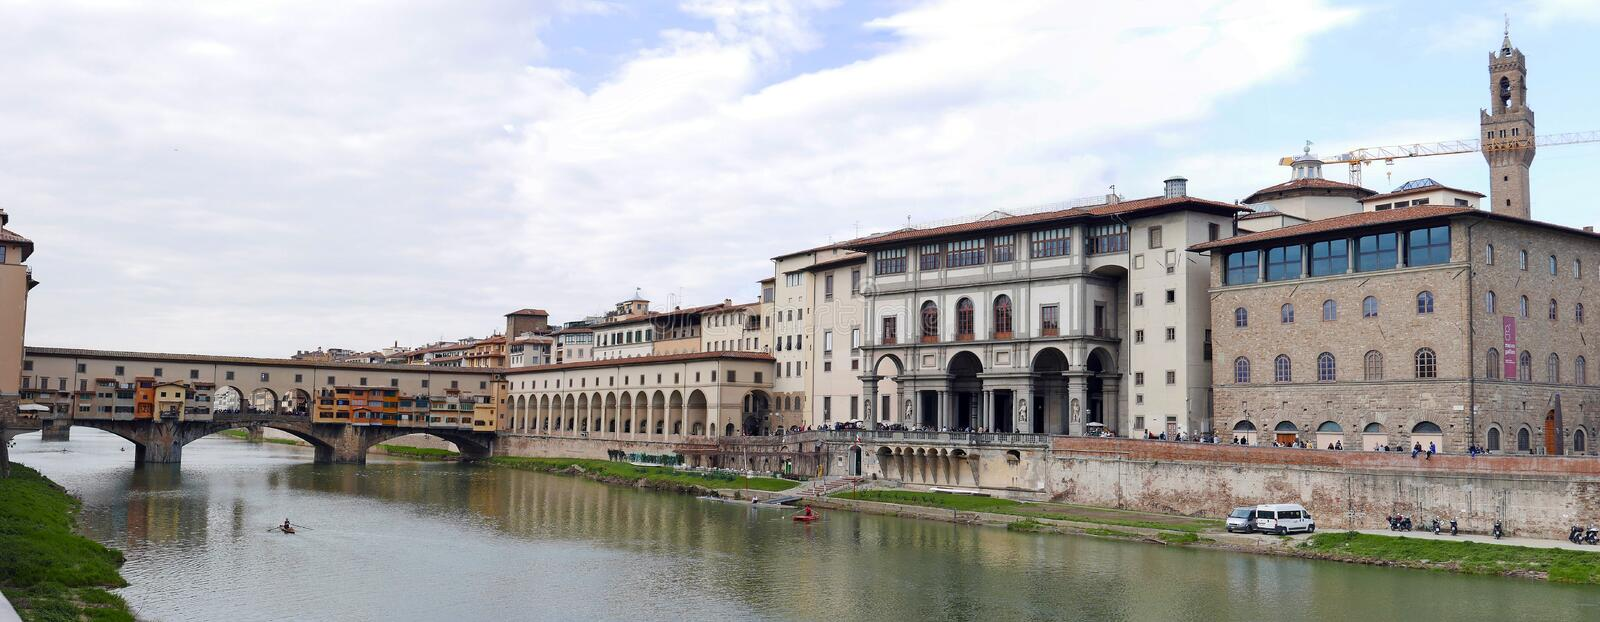 Ponte Vecchio. View of Ponte Vecchio with river Arno, Florence, Italy royalty free stock photography